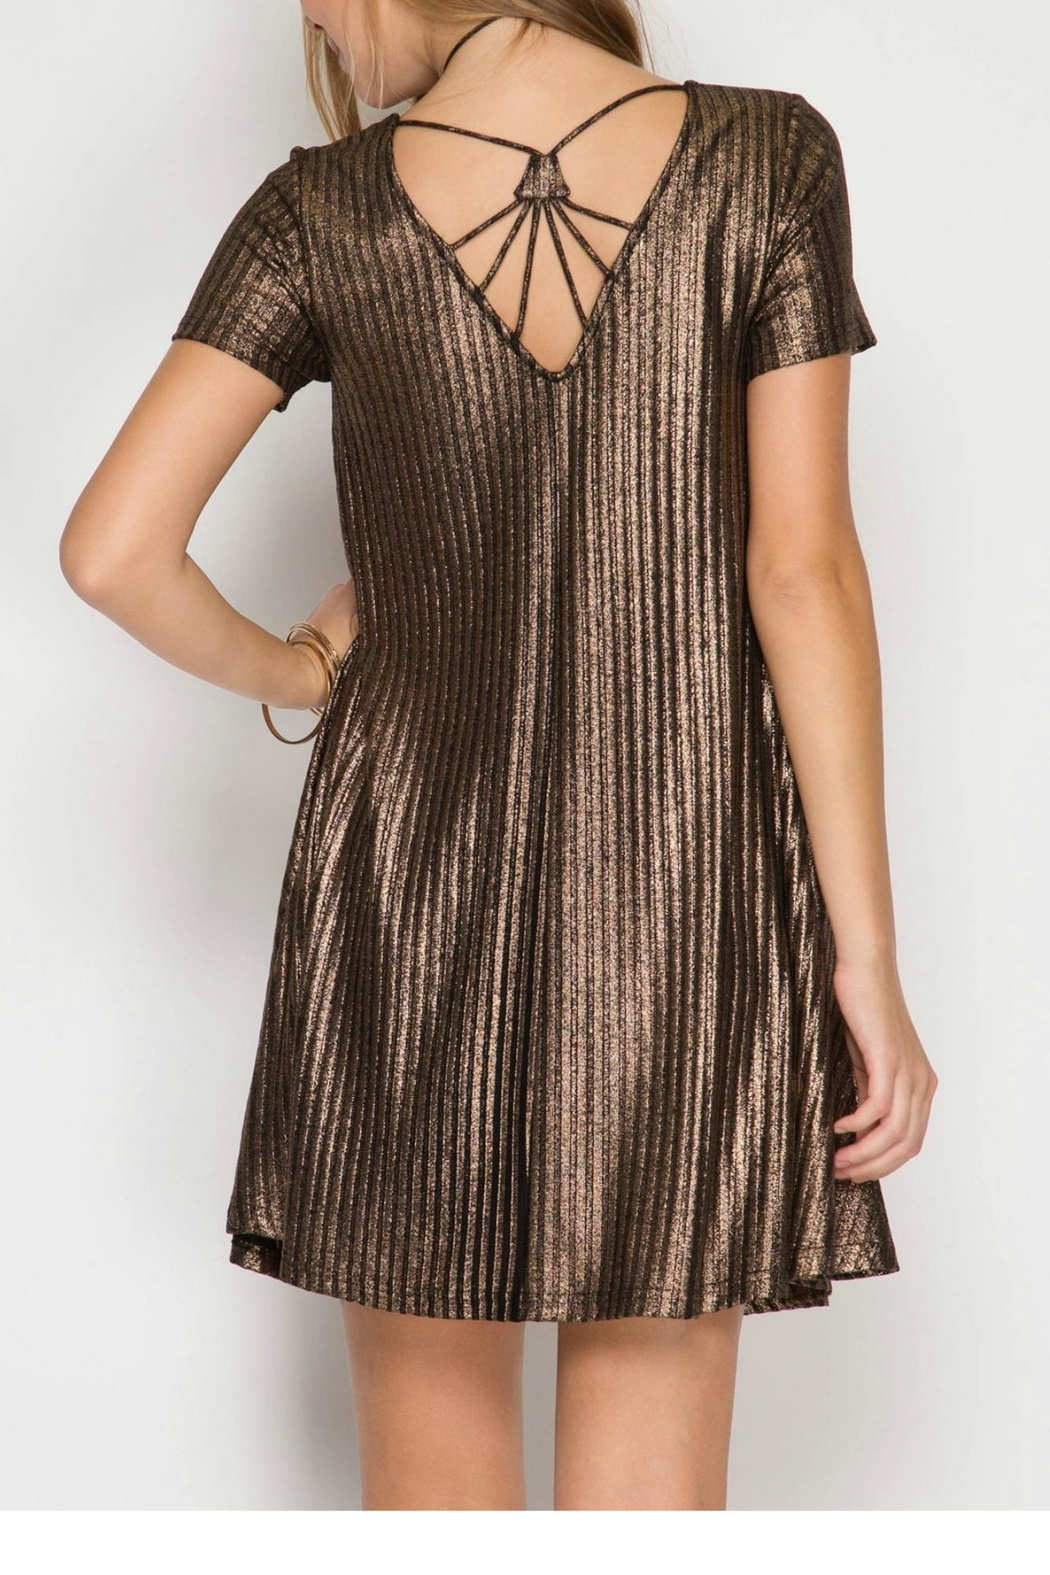 She + Sky Ribbed Metallic Dress - Front Full Image